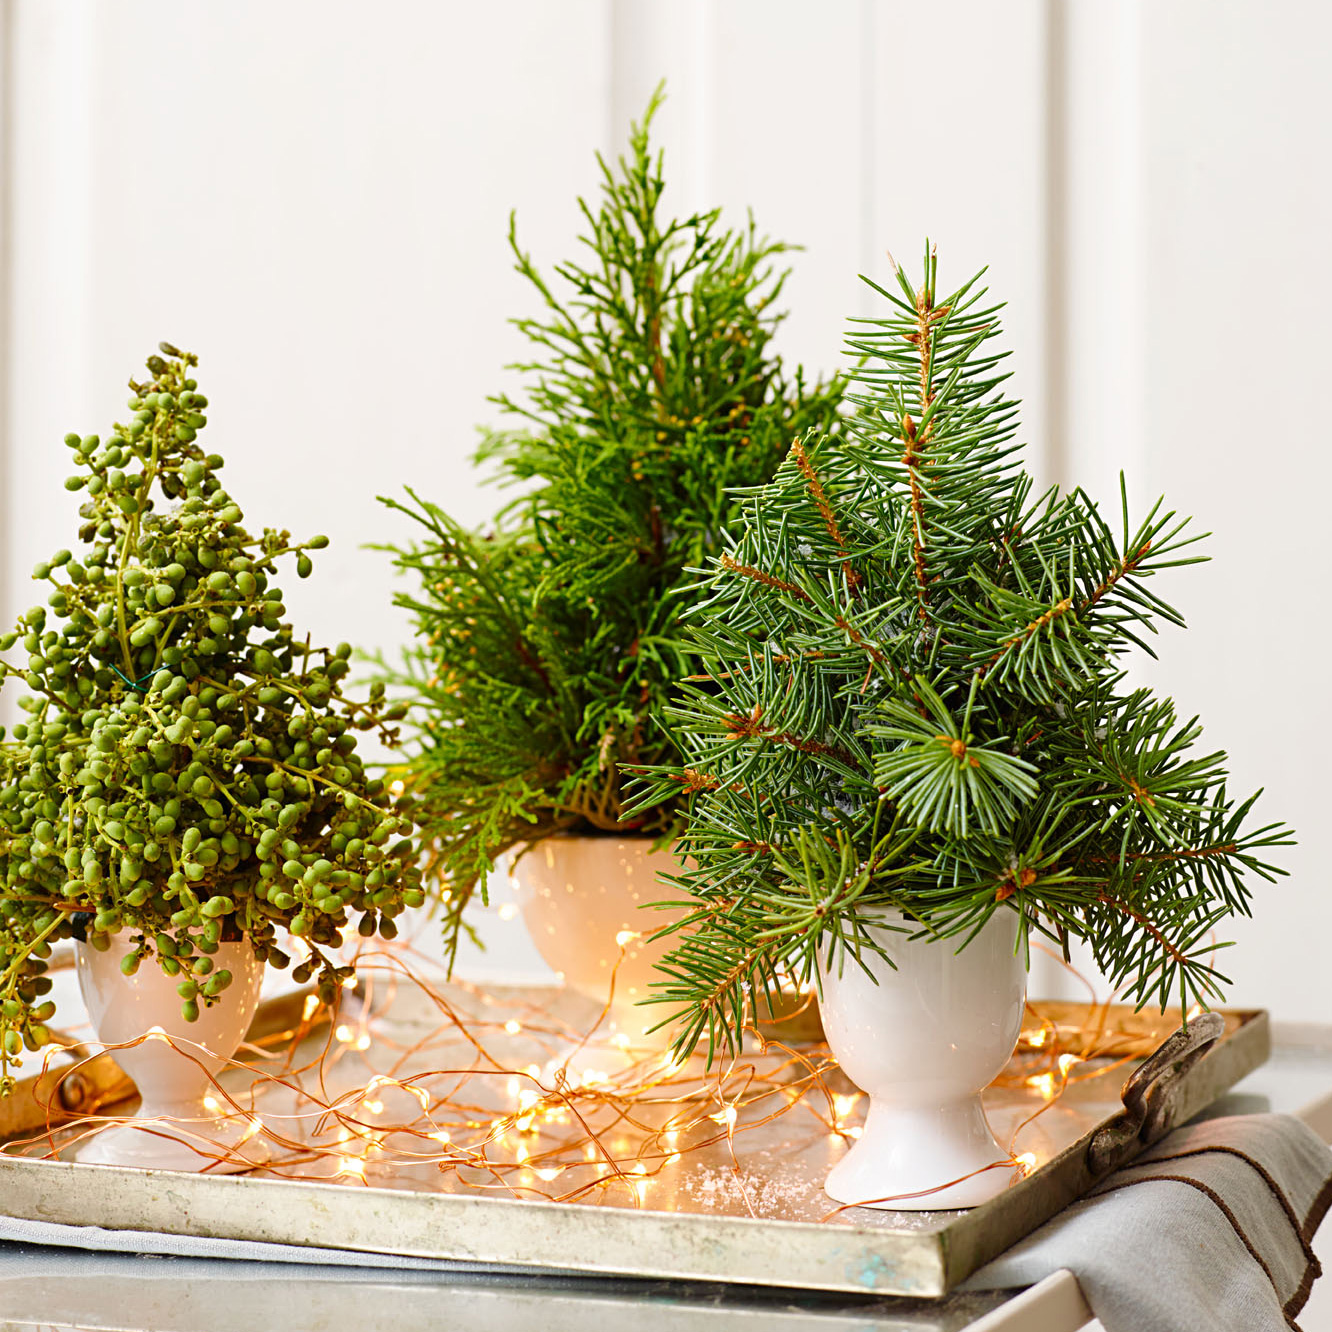 Keep the ornaments simple How to have a last-minute elegant Christmas decor at home?